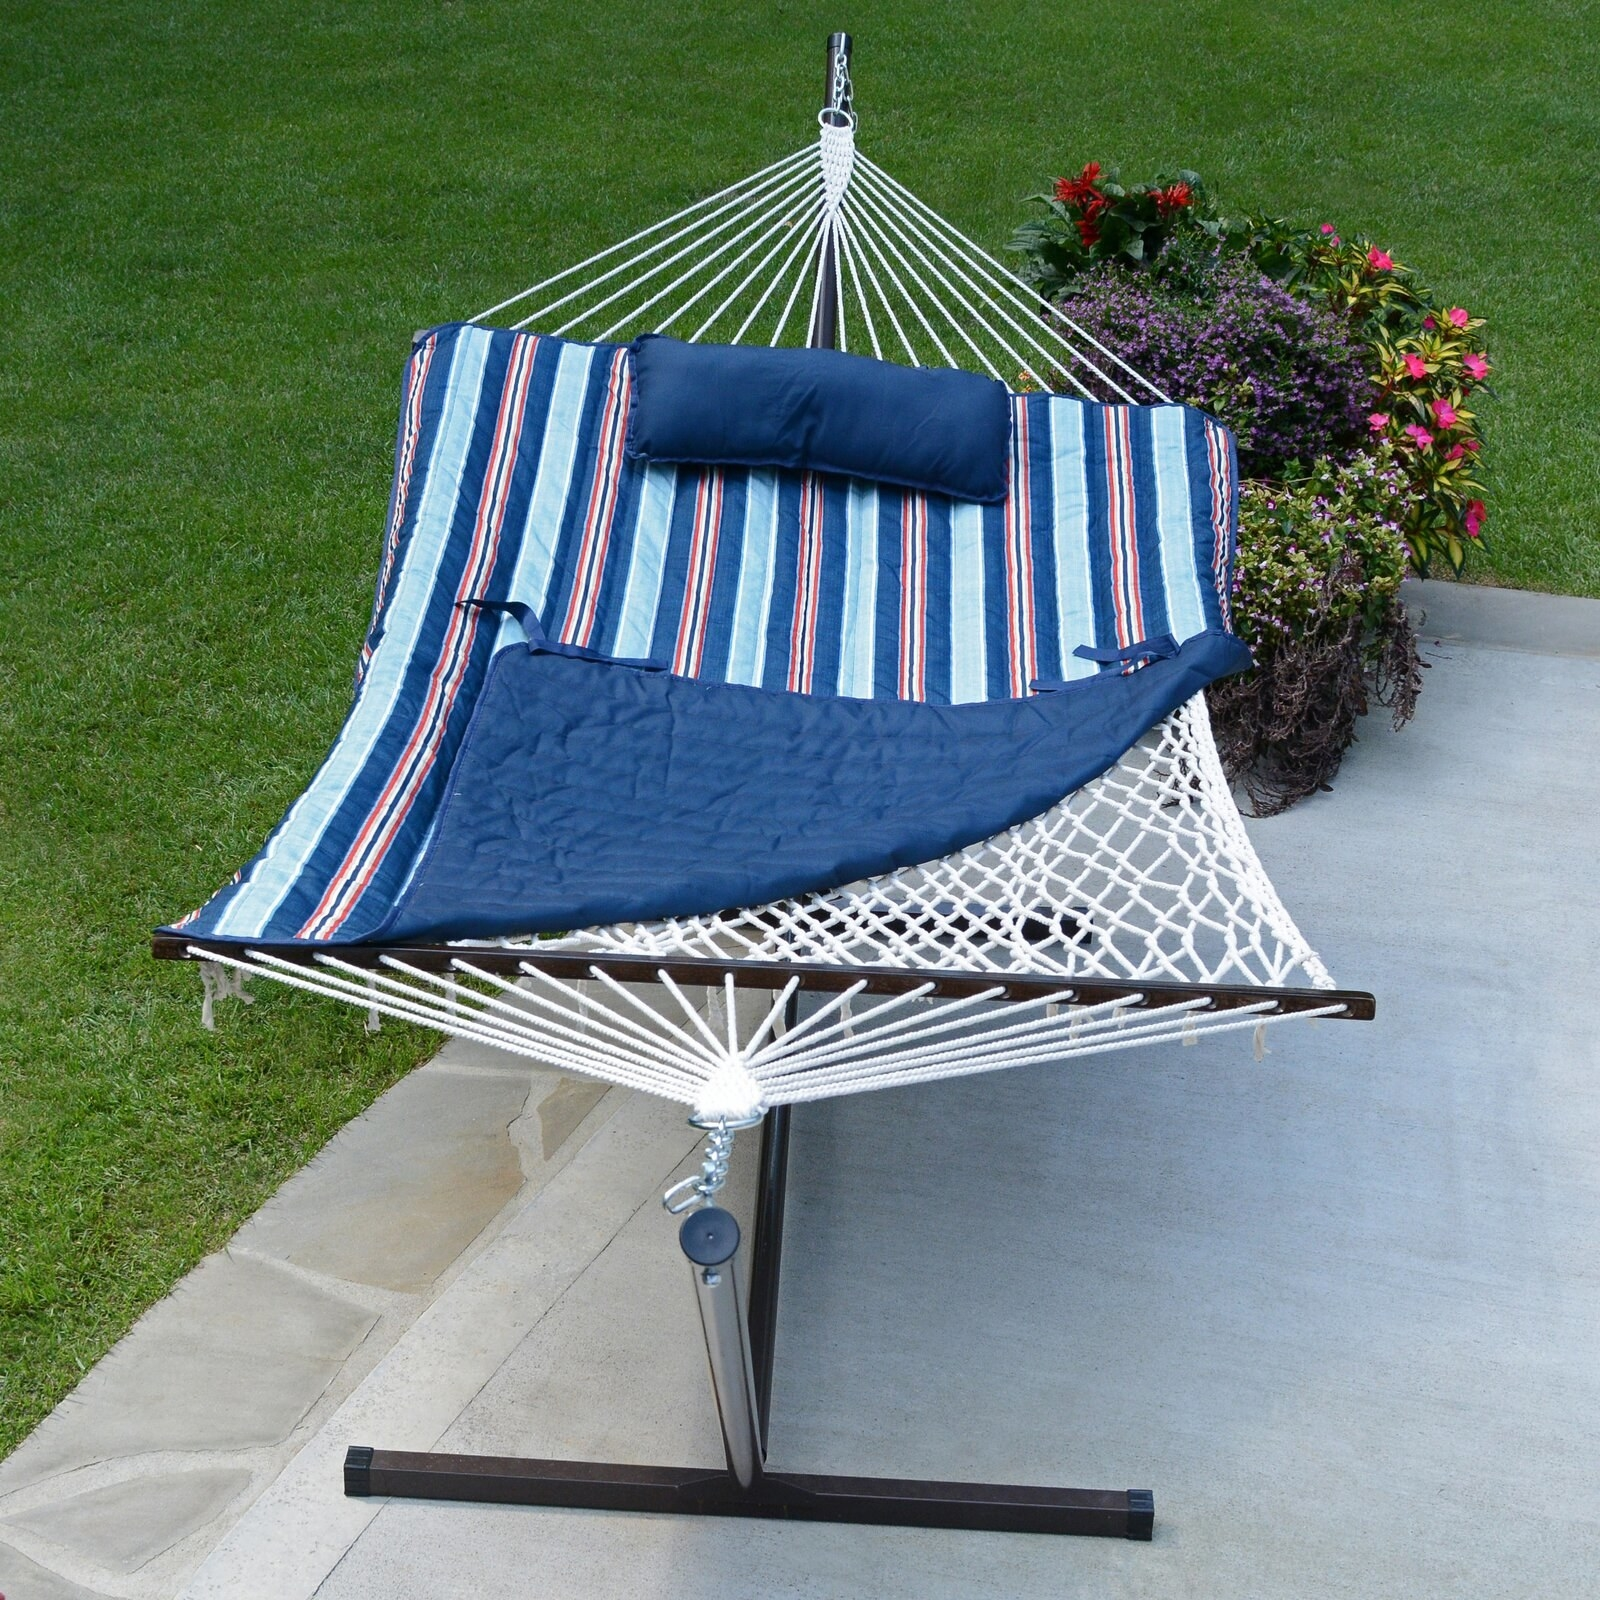 Rope hammock with stand and cotton pad in red, white, and blue stripes